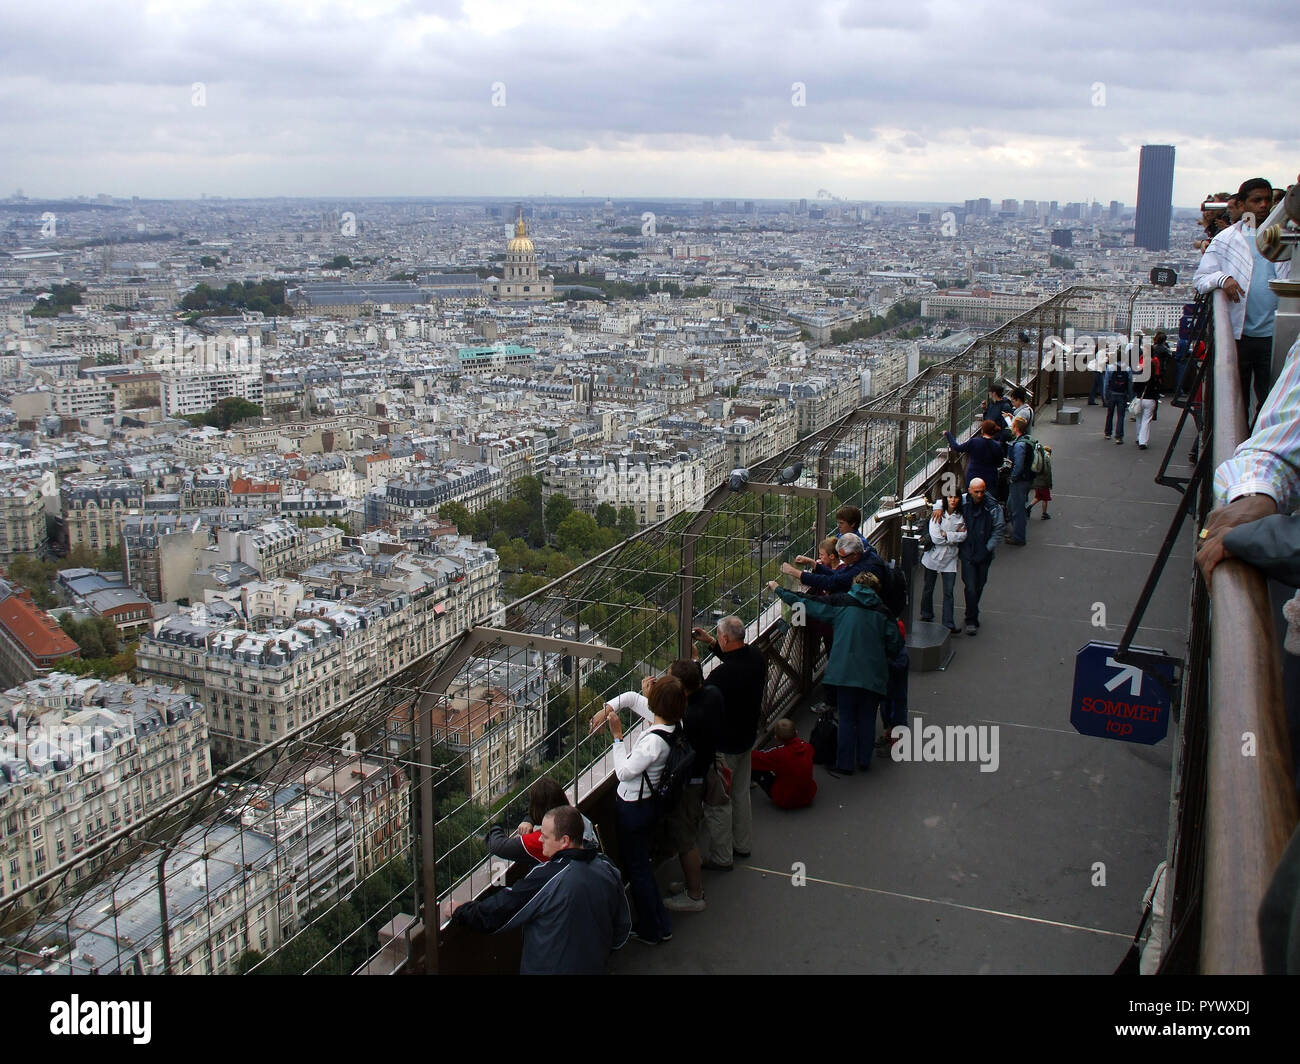 A view of the city of Paris taken from the Eiffel tower in Paris